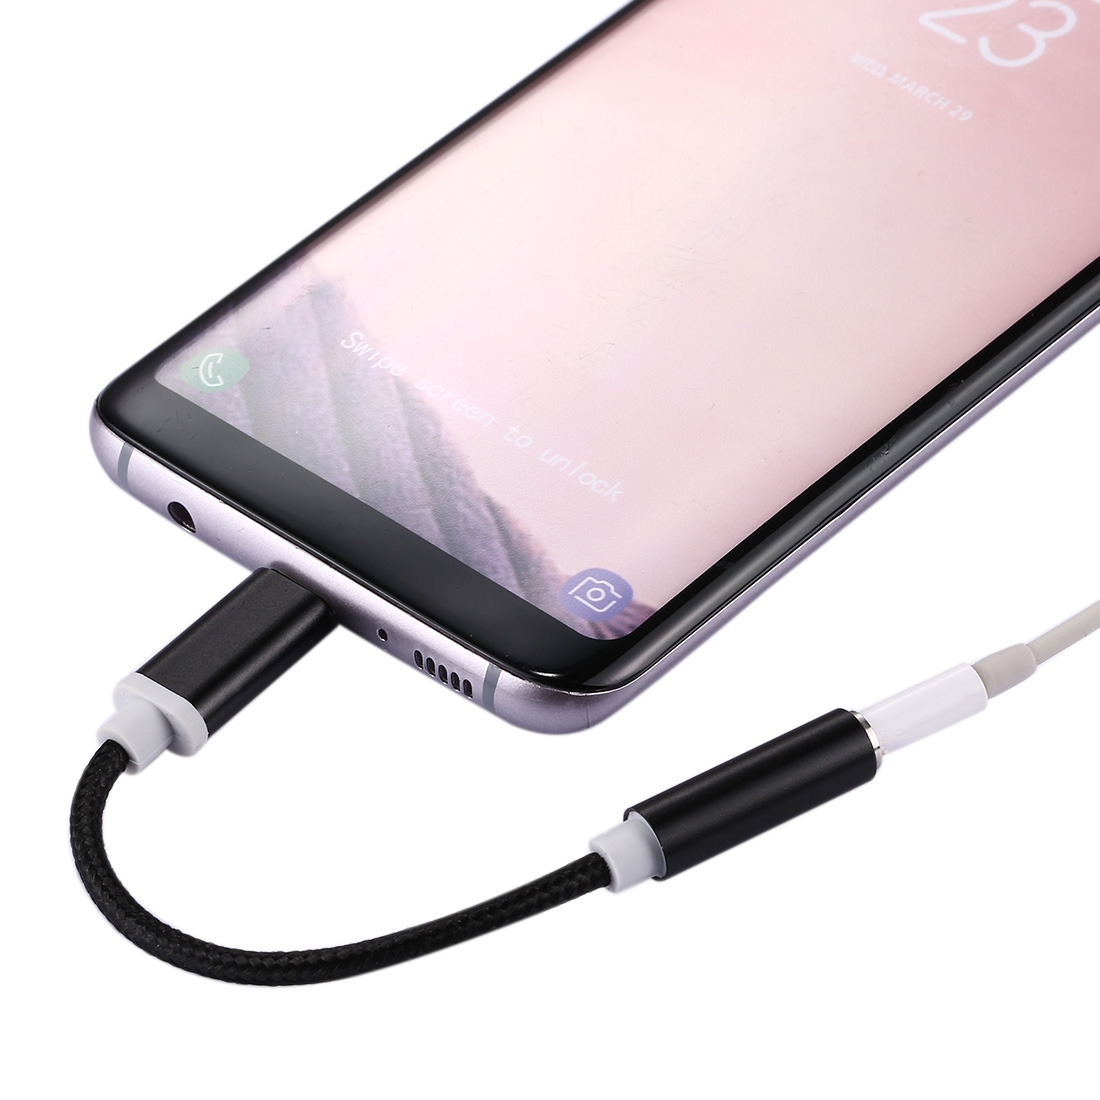 USB-C / Type-C Male to 3.5mm Female Weave Texture Audio Adapter for Samsung Galaxy S8 & S8 + / LG G6 / Huawei P10 & P10 Plus / Oneplus 5 / Xiaomi Mi6 & Max 2 /and other Smartphones, 10cm (Black)